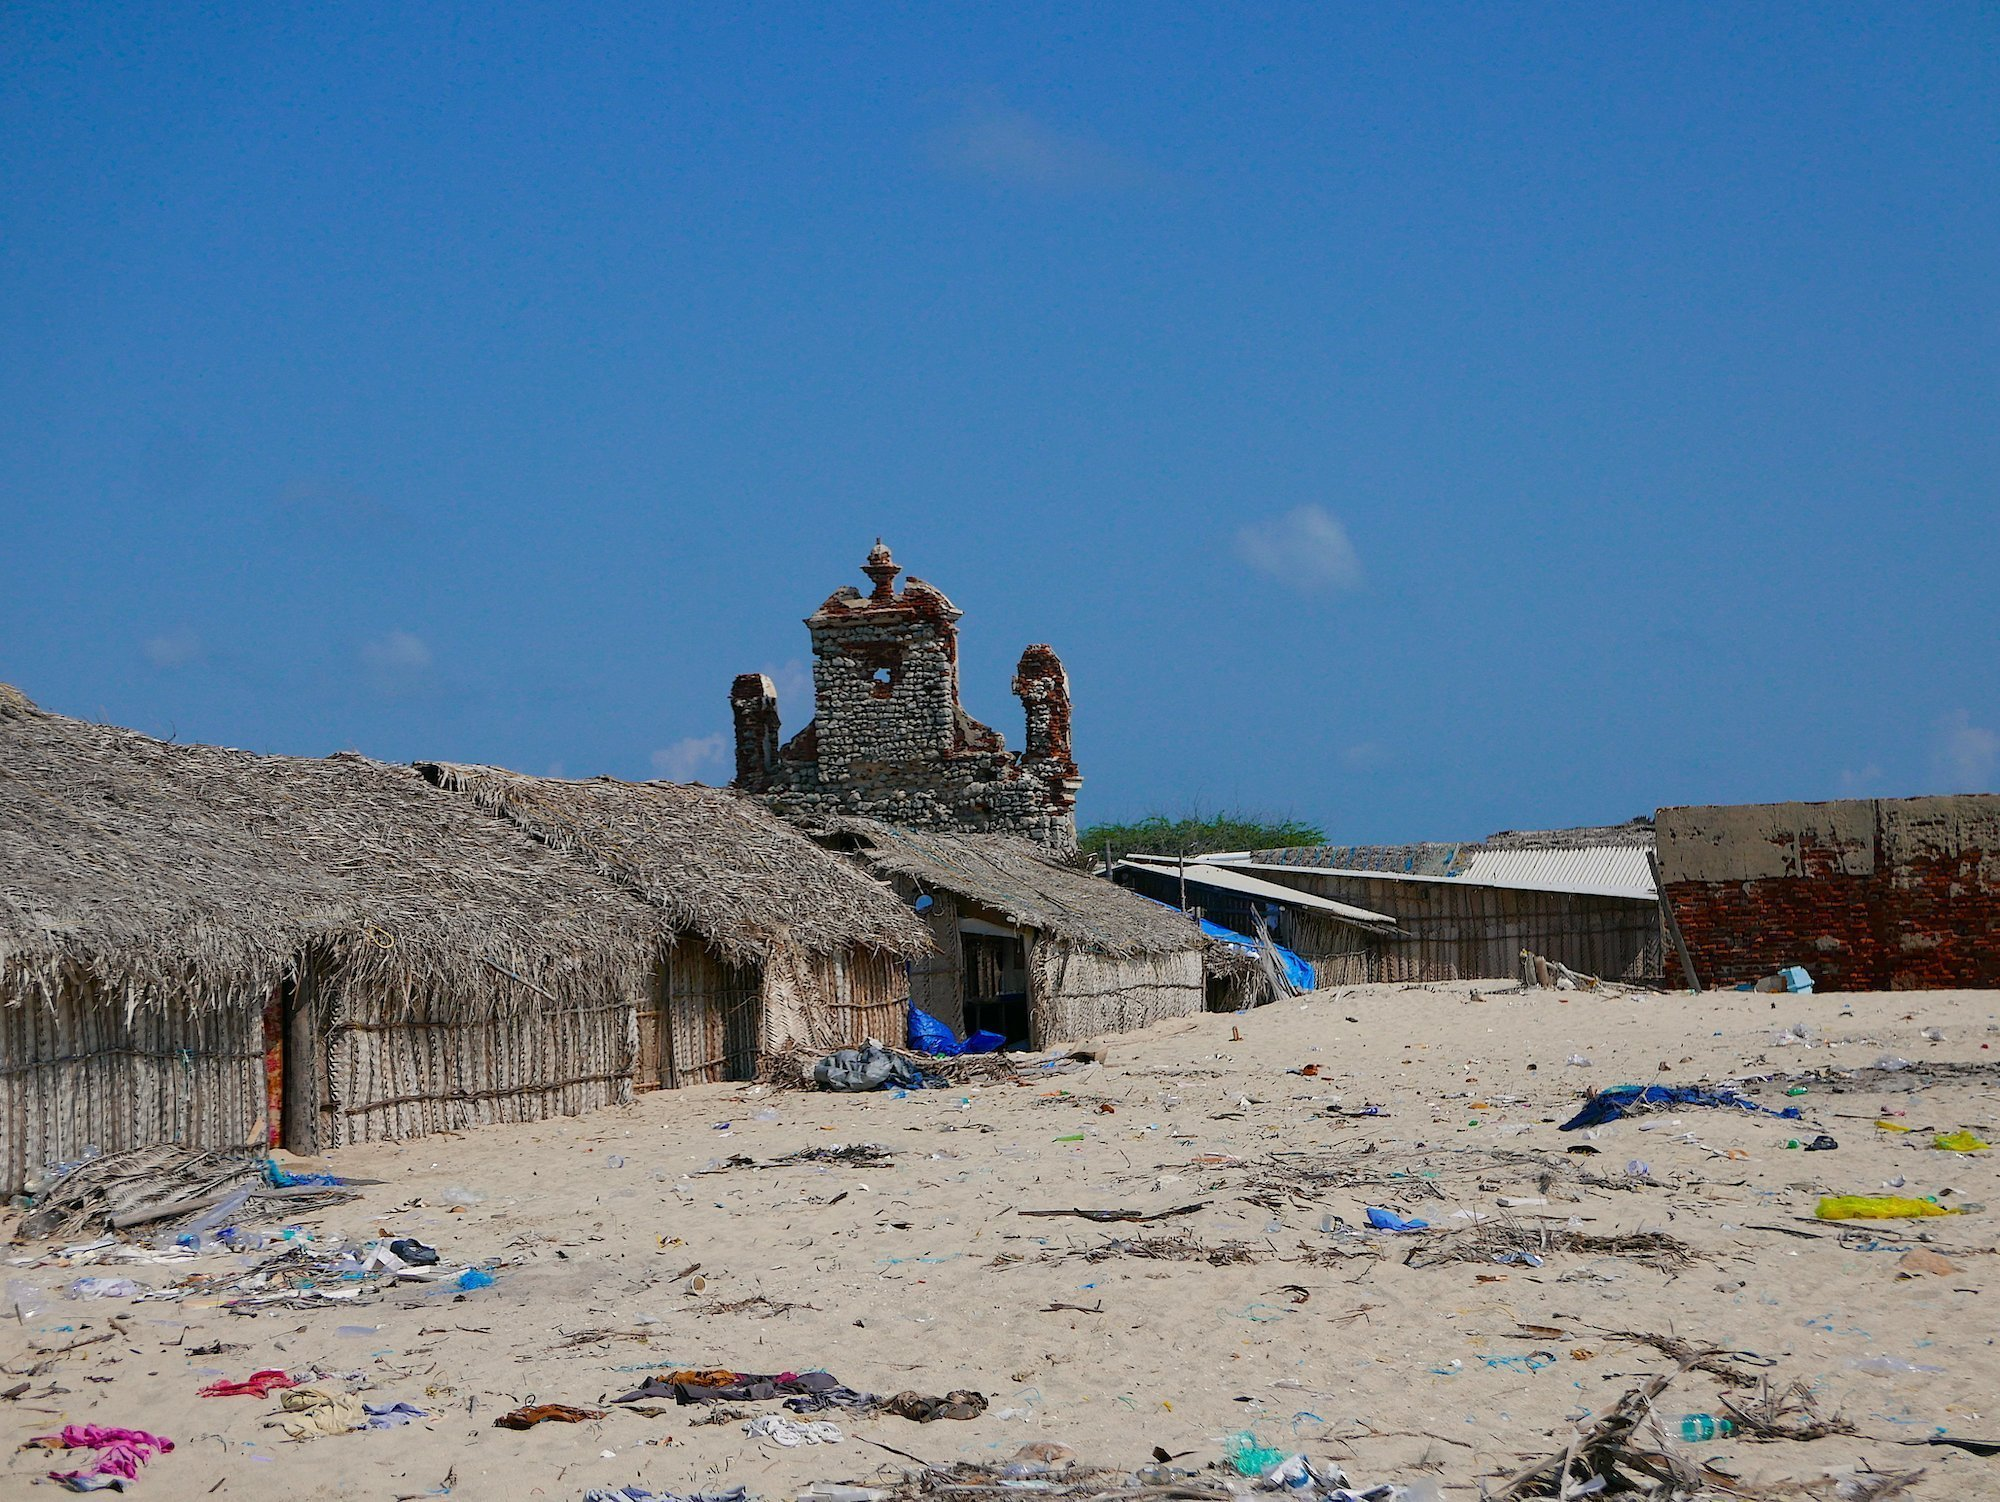 Church & shacks Dhanushkodi